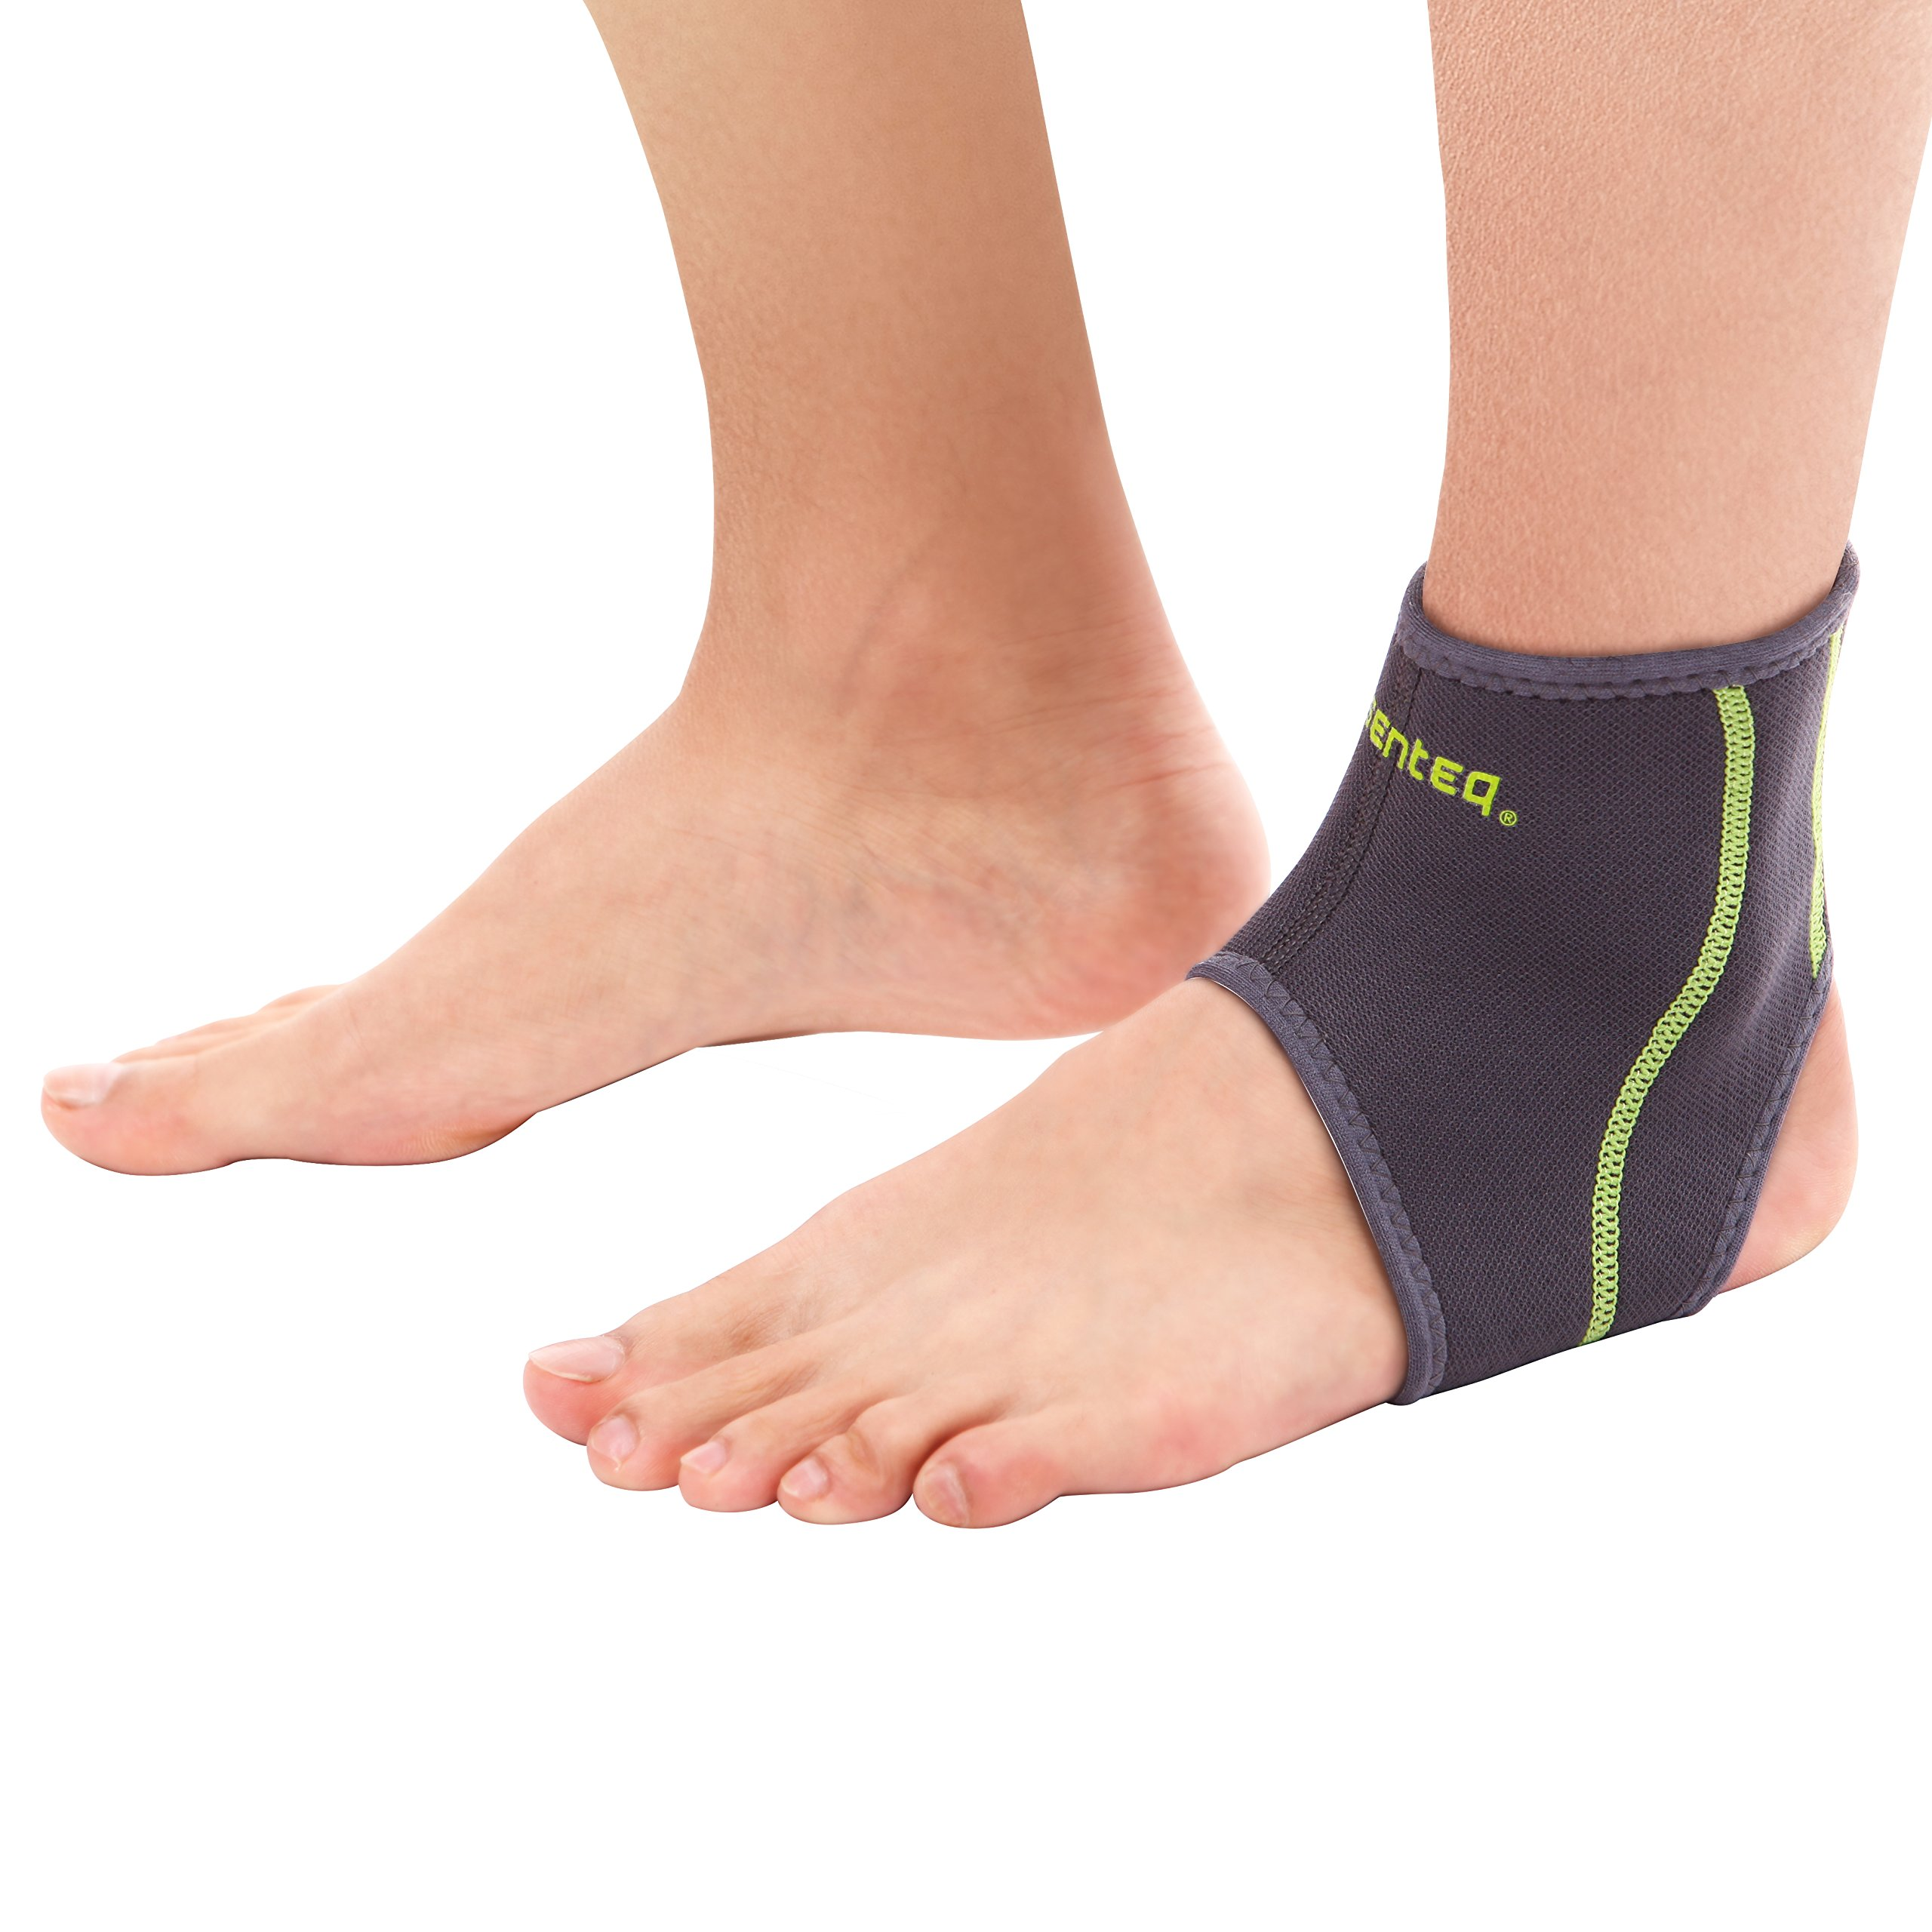 SENTEQ Compression Ankle Brace - Medical Grade and FDA Approved. Provides Support and Pain Relief for Sprains, Strains, Arthritis and Torn Tendons in Foot and Ankle (XL)